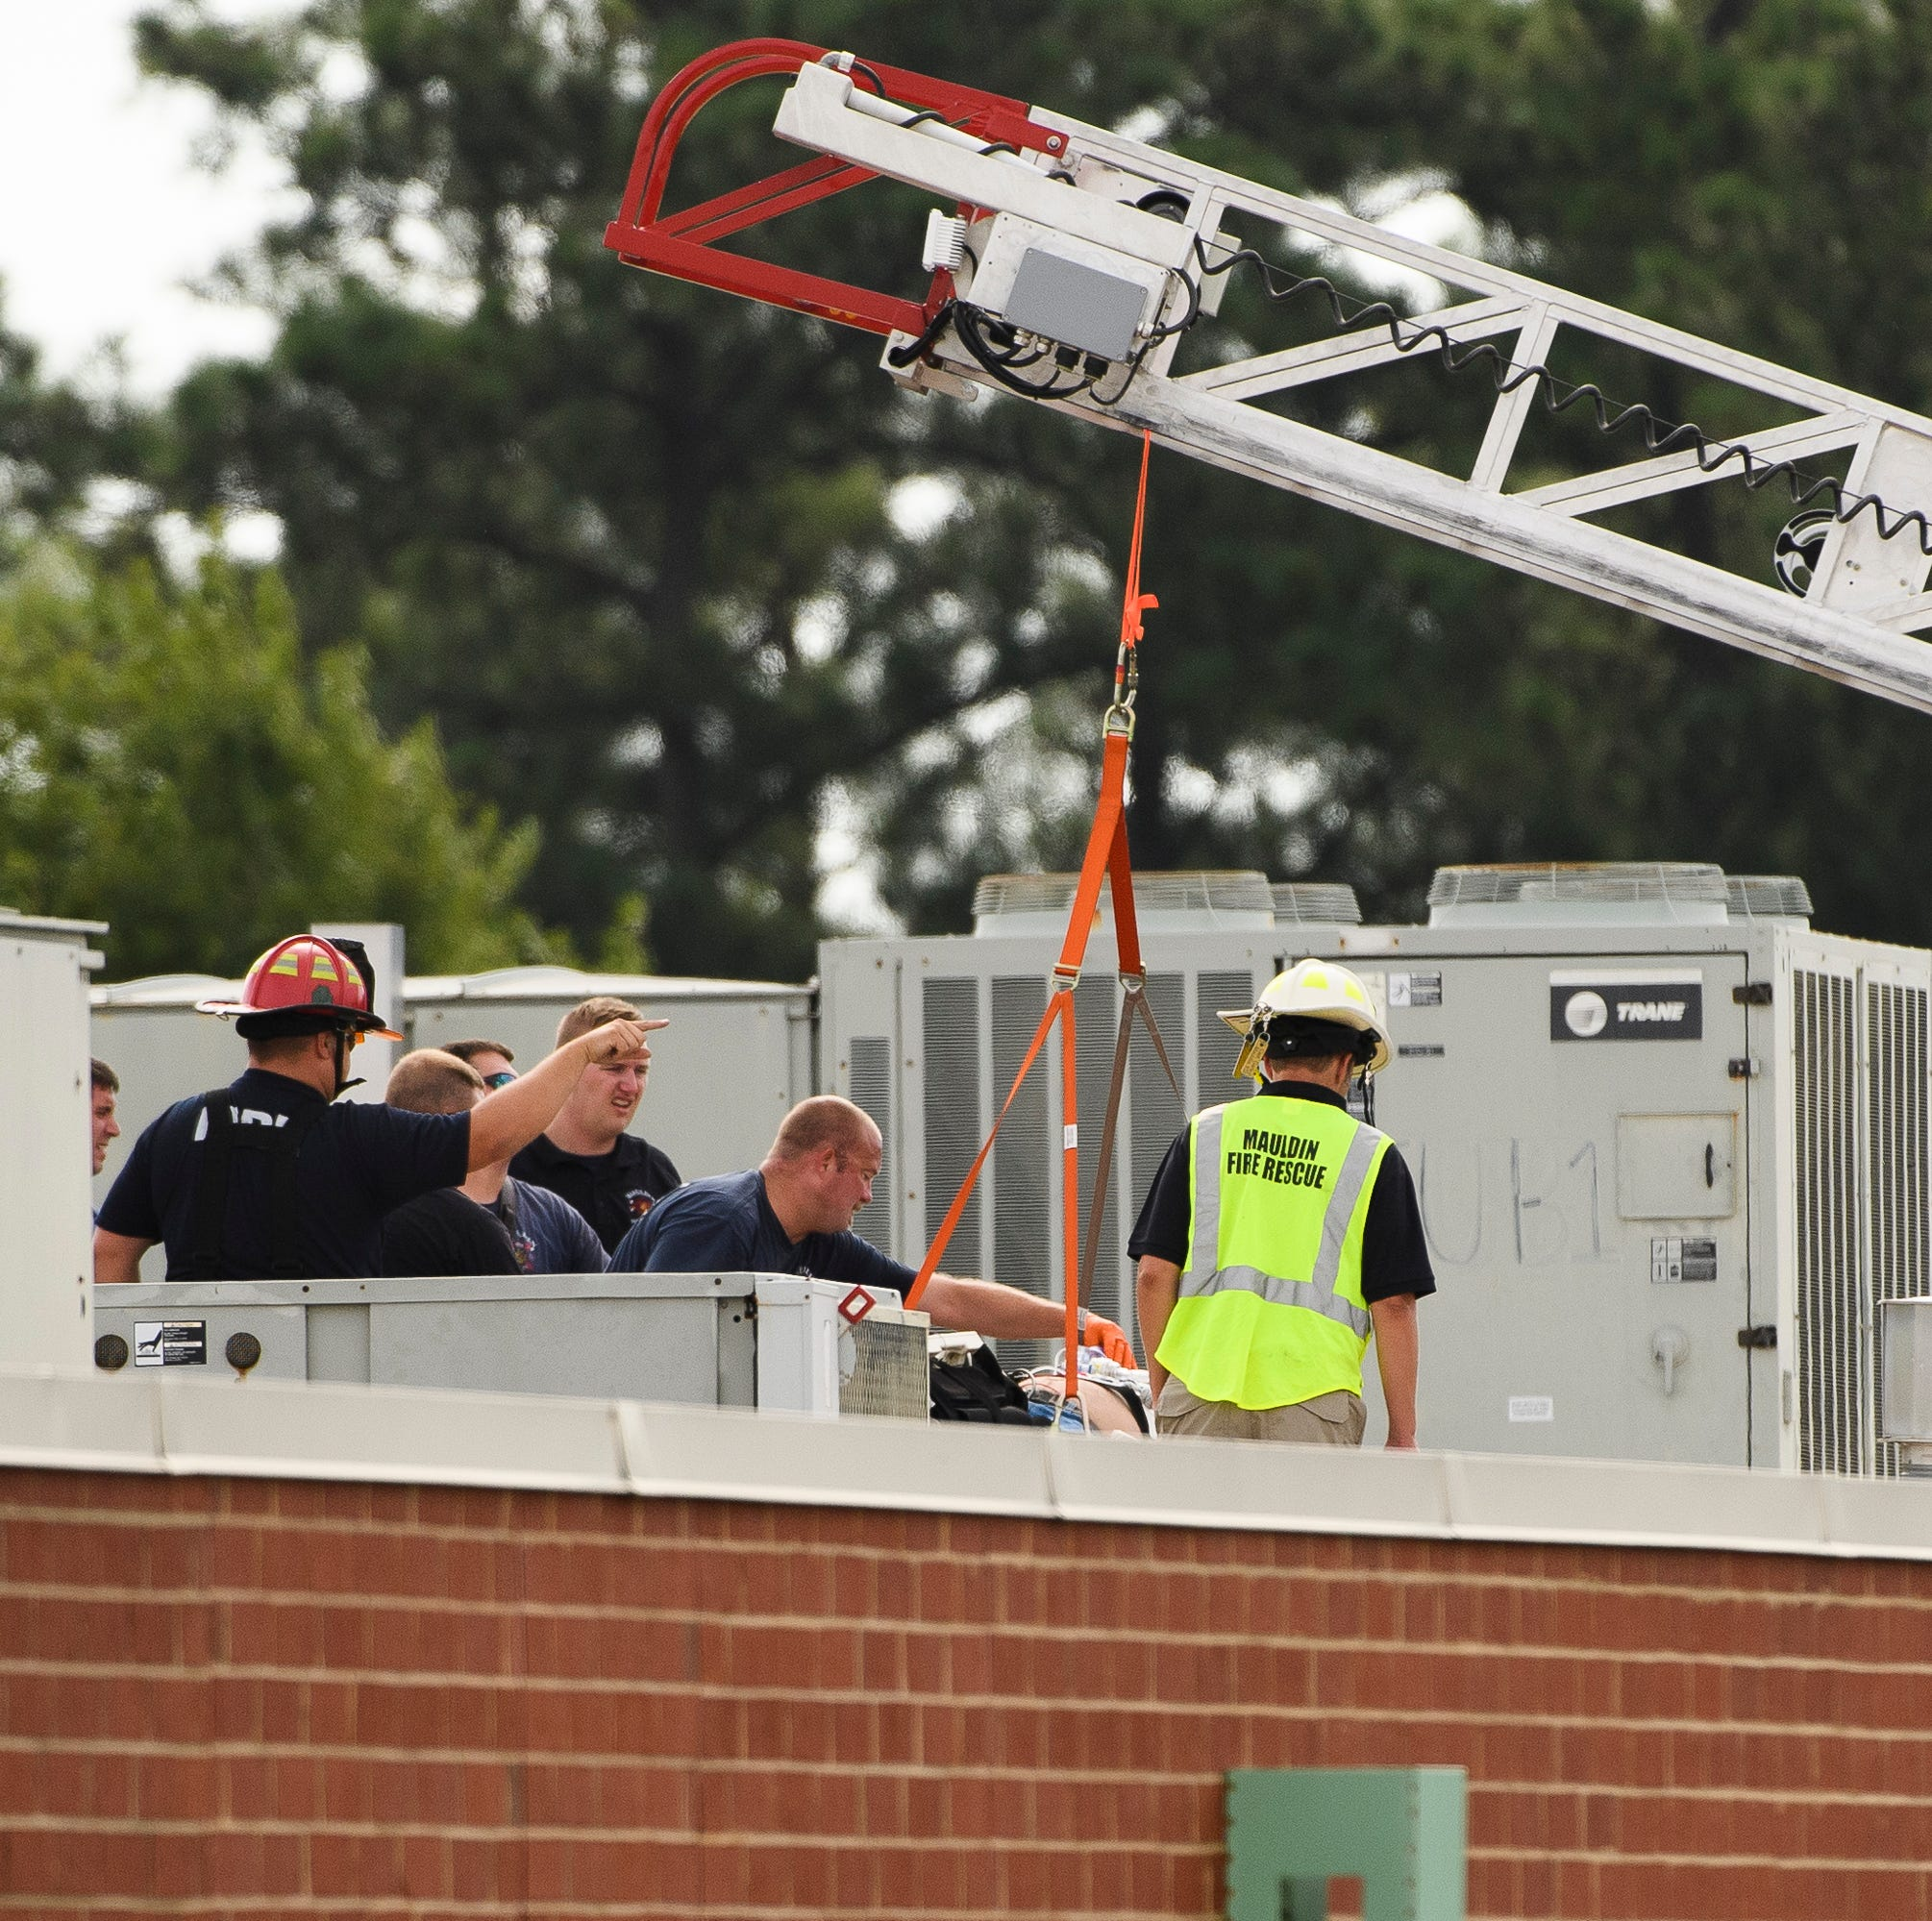 HVAC worker identified after collapsing on roof of Mauldin Middle School